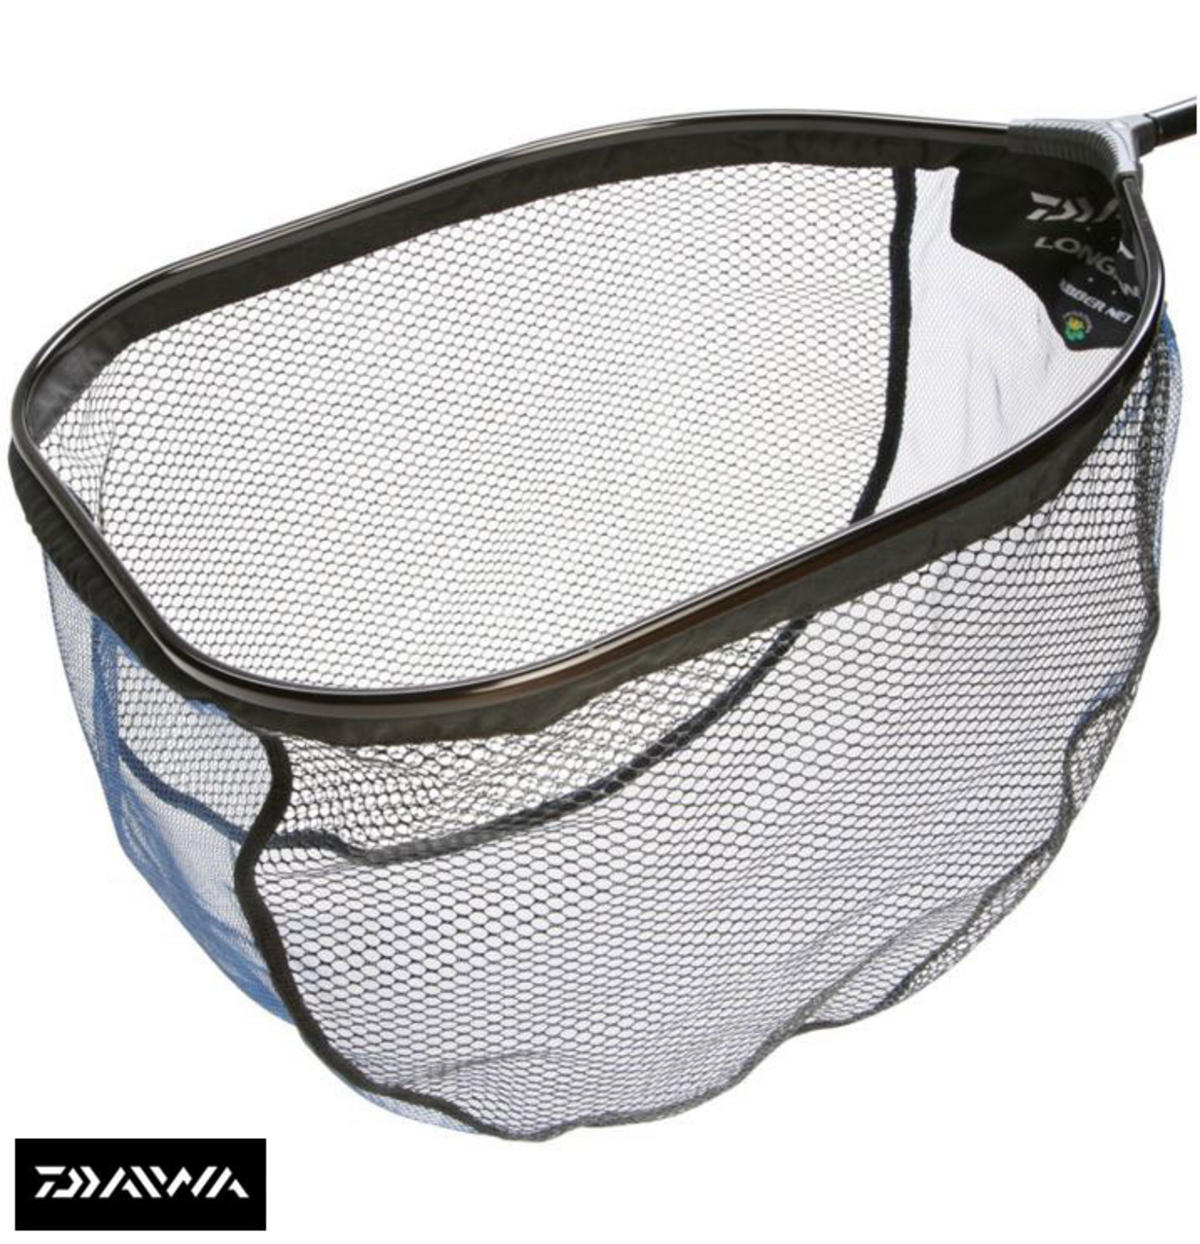 New daiwa longbow f1 rubber landing net head all sizes for Rubber fishing nets